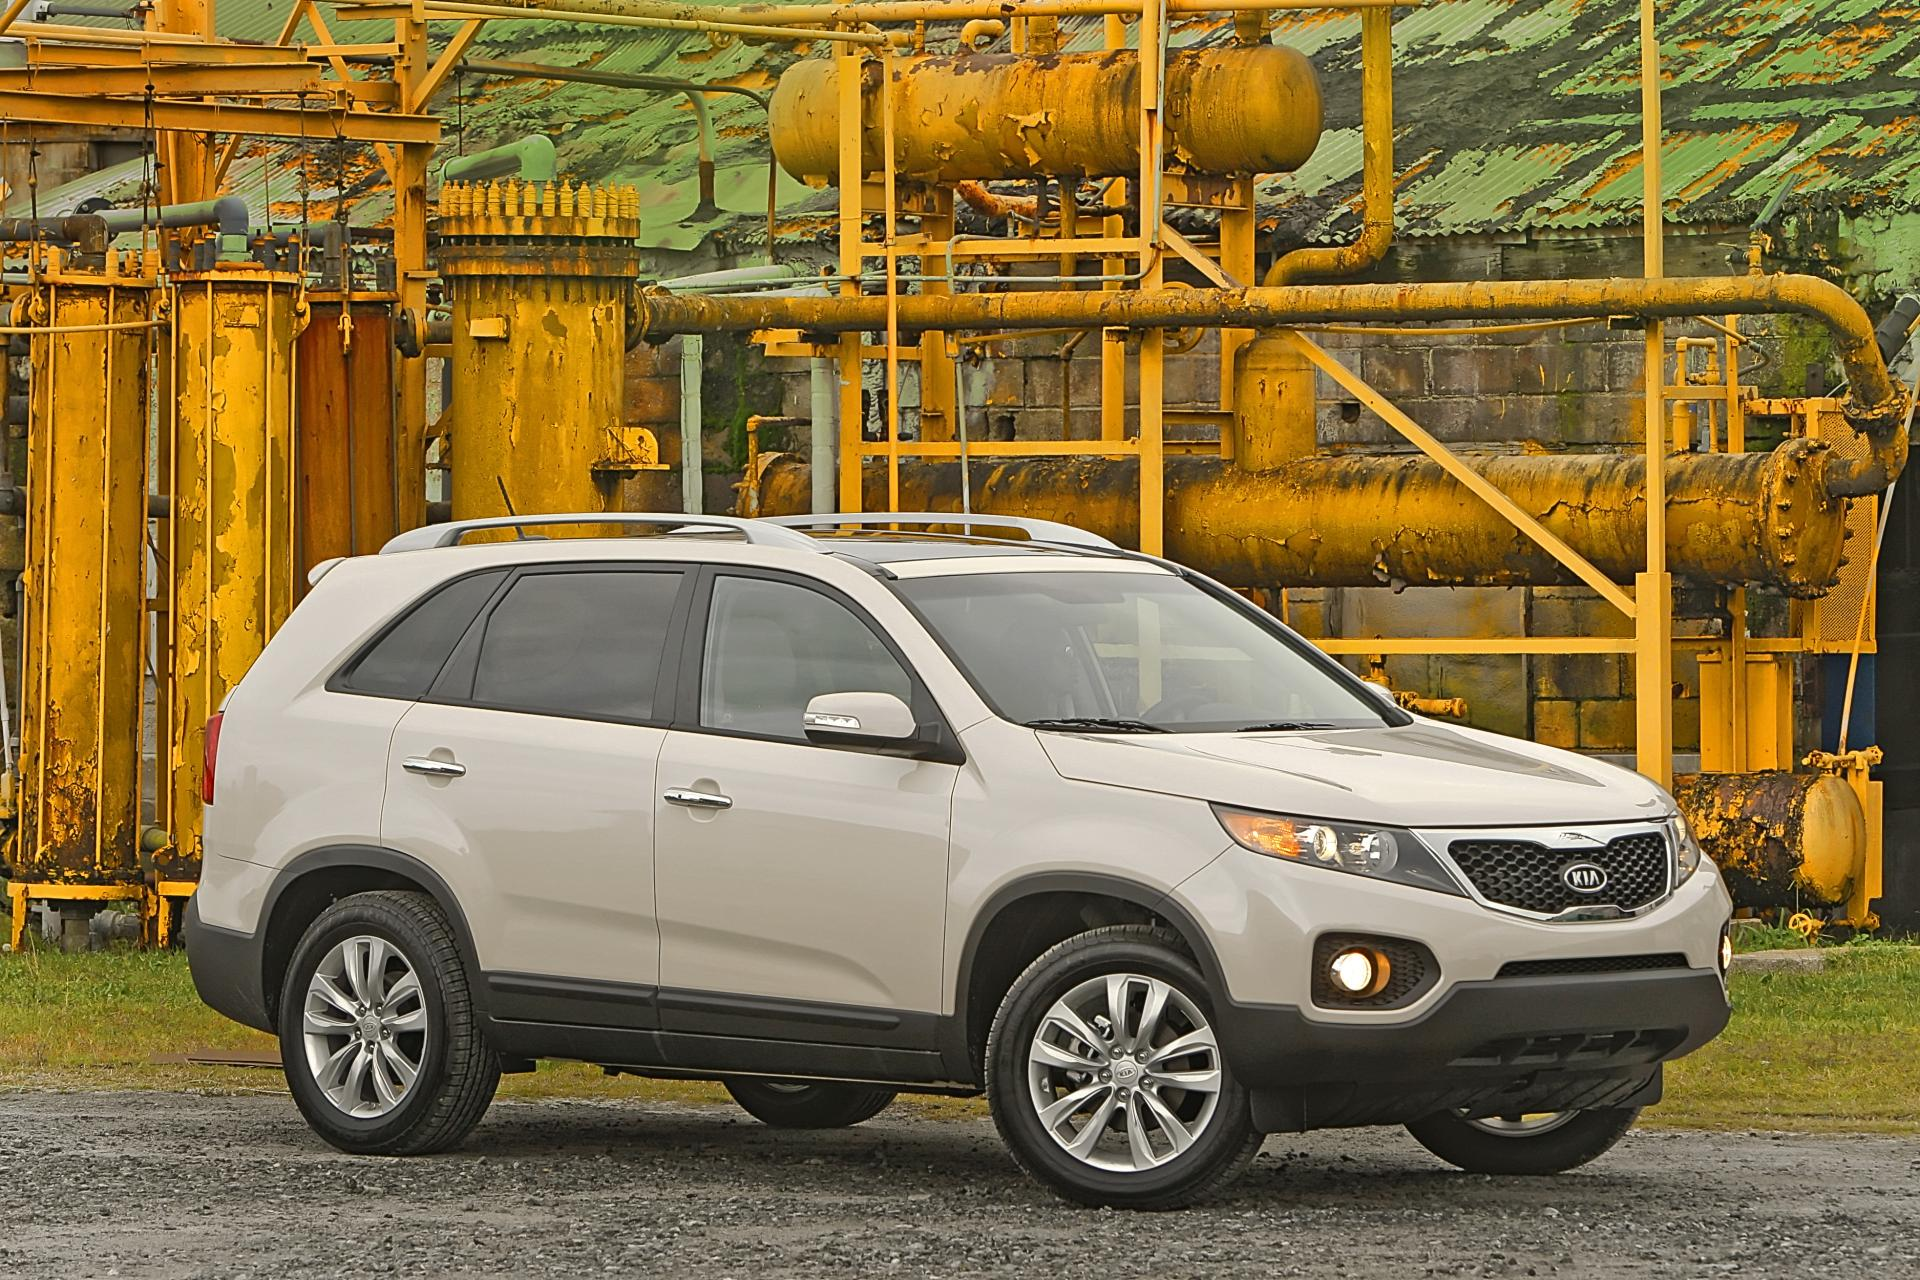 sorento used kia car cars en model honduras location tegucigalpa trucks make auto